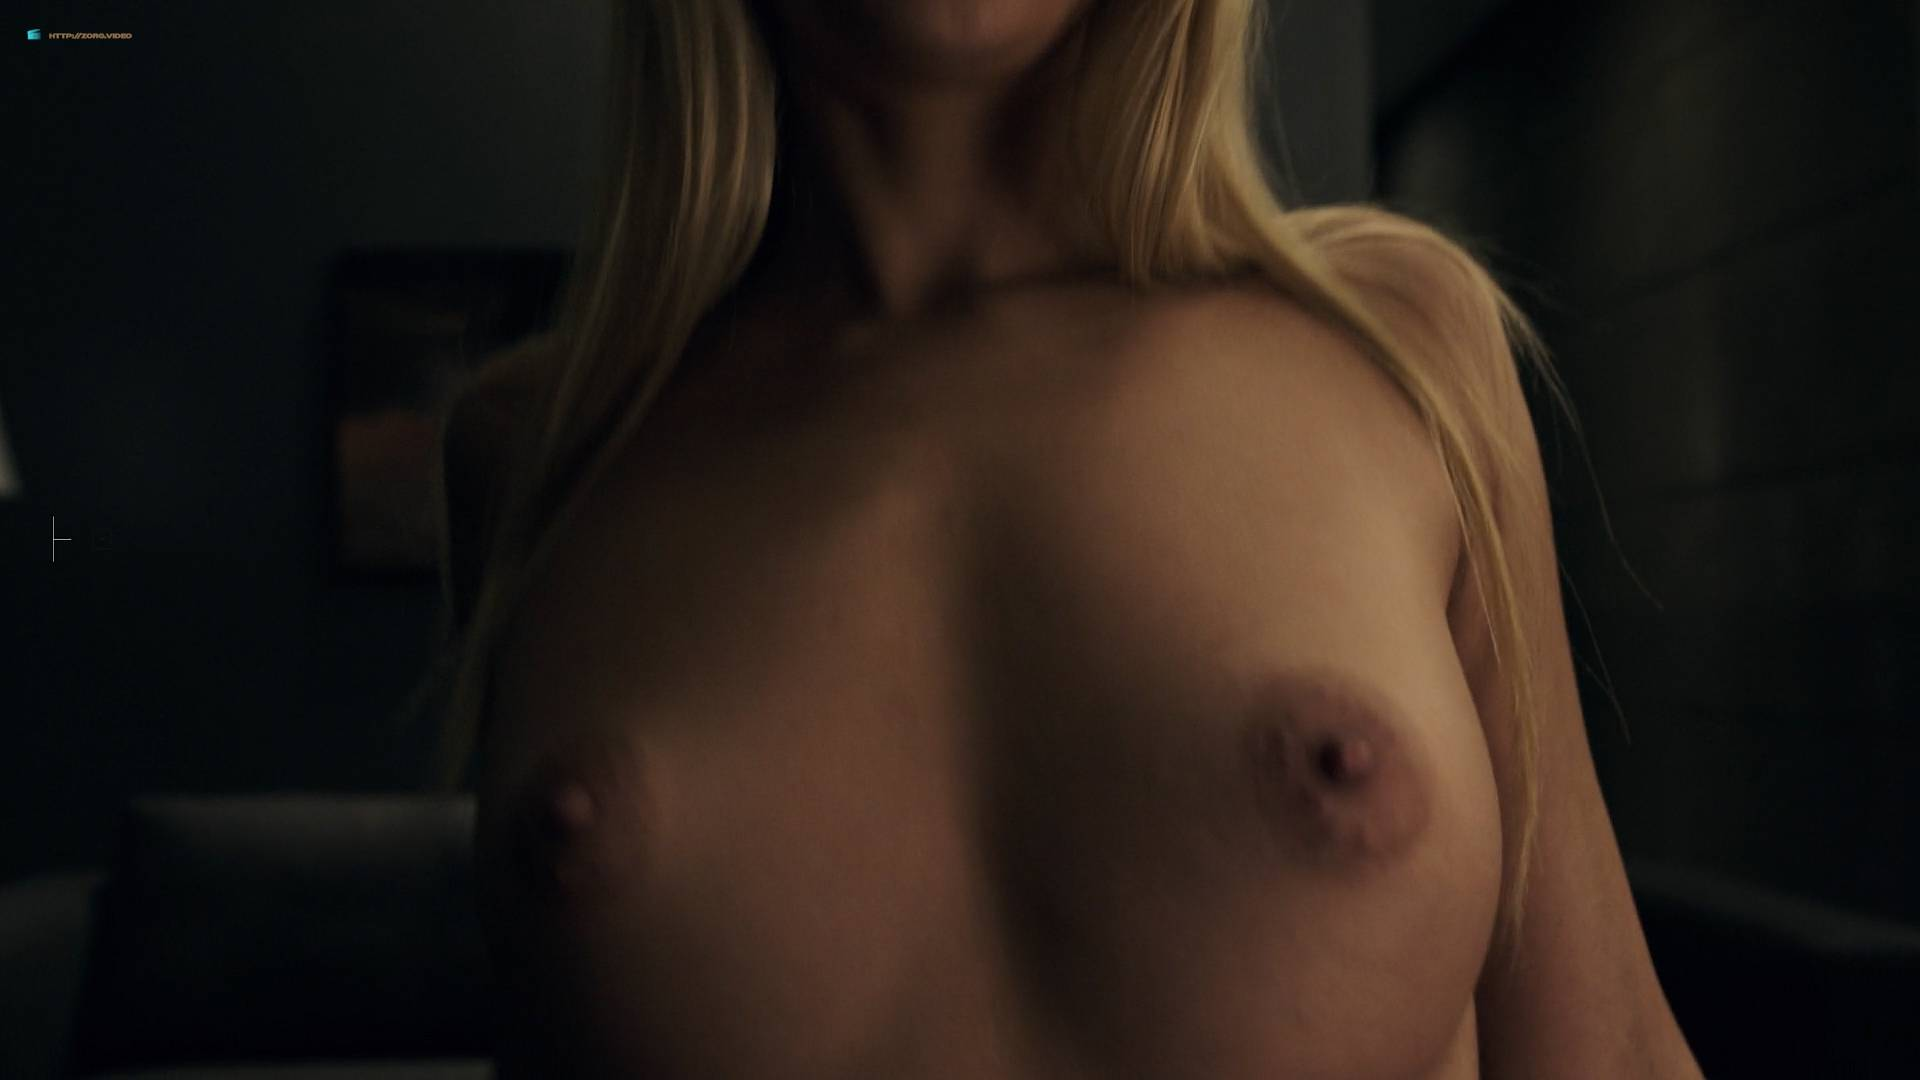 Amanda seyfried sex scene 5